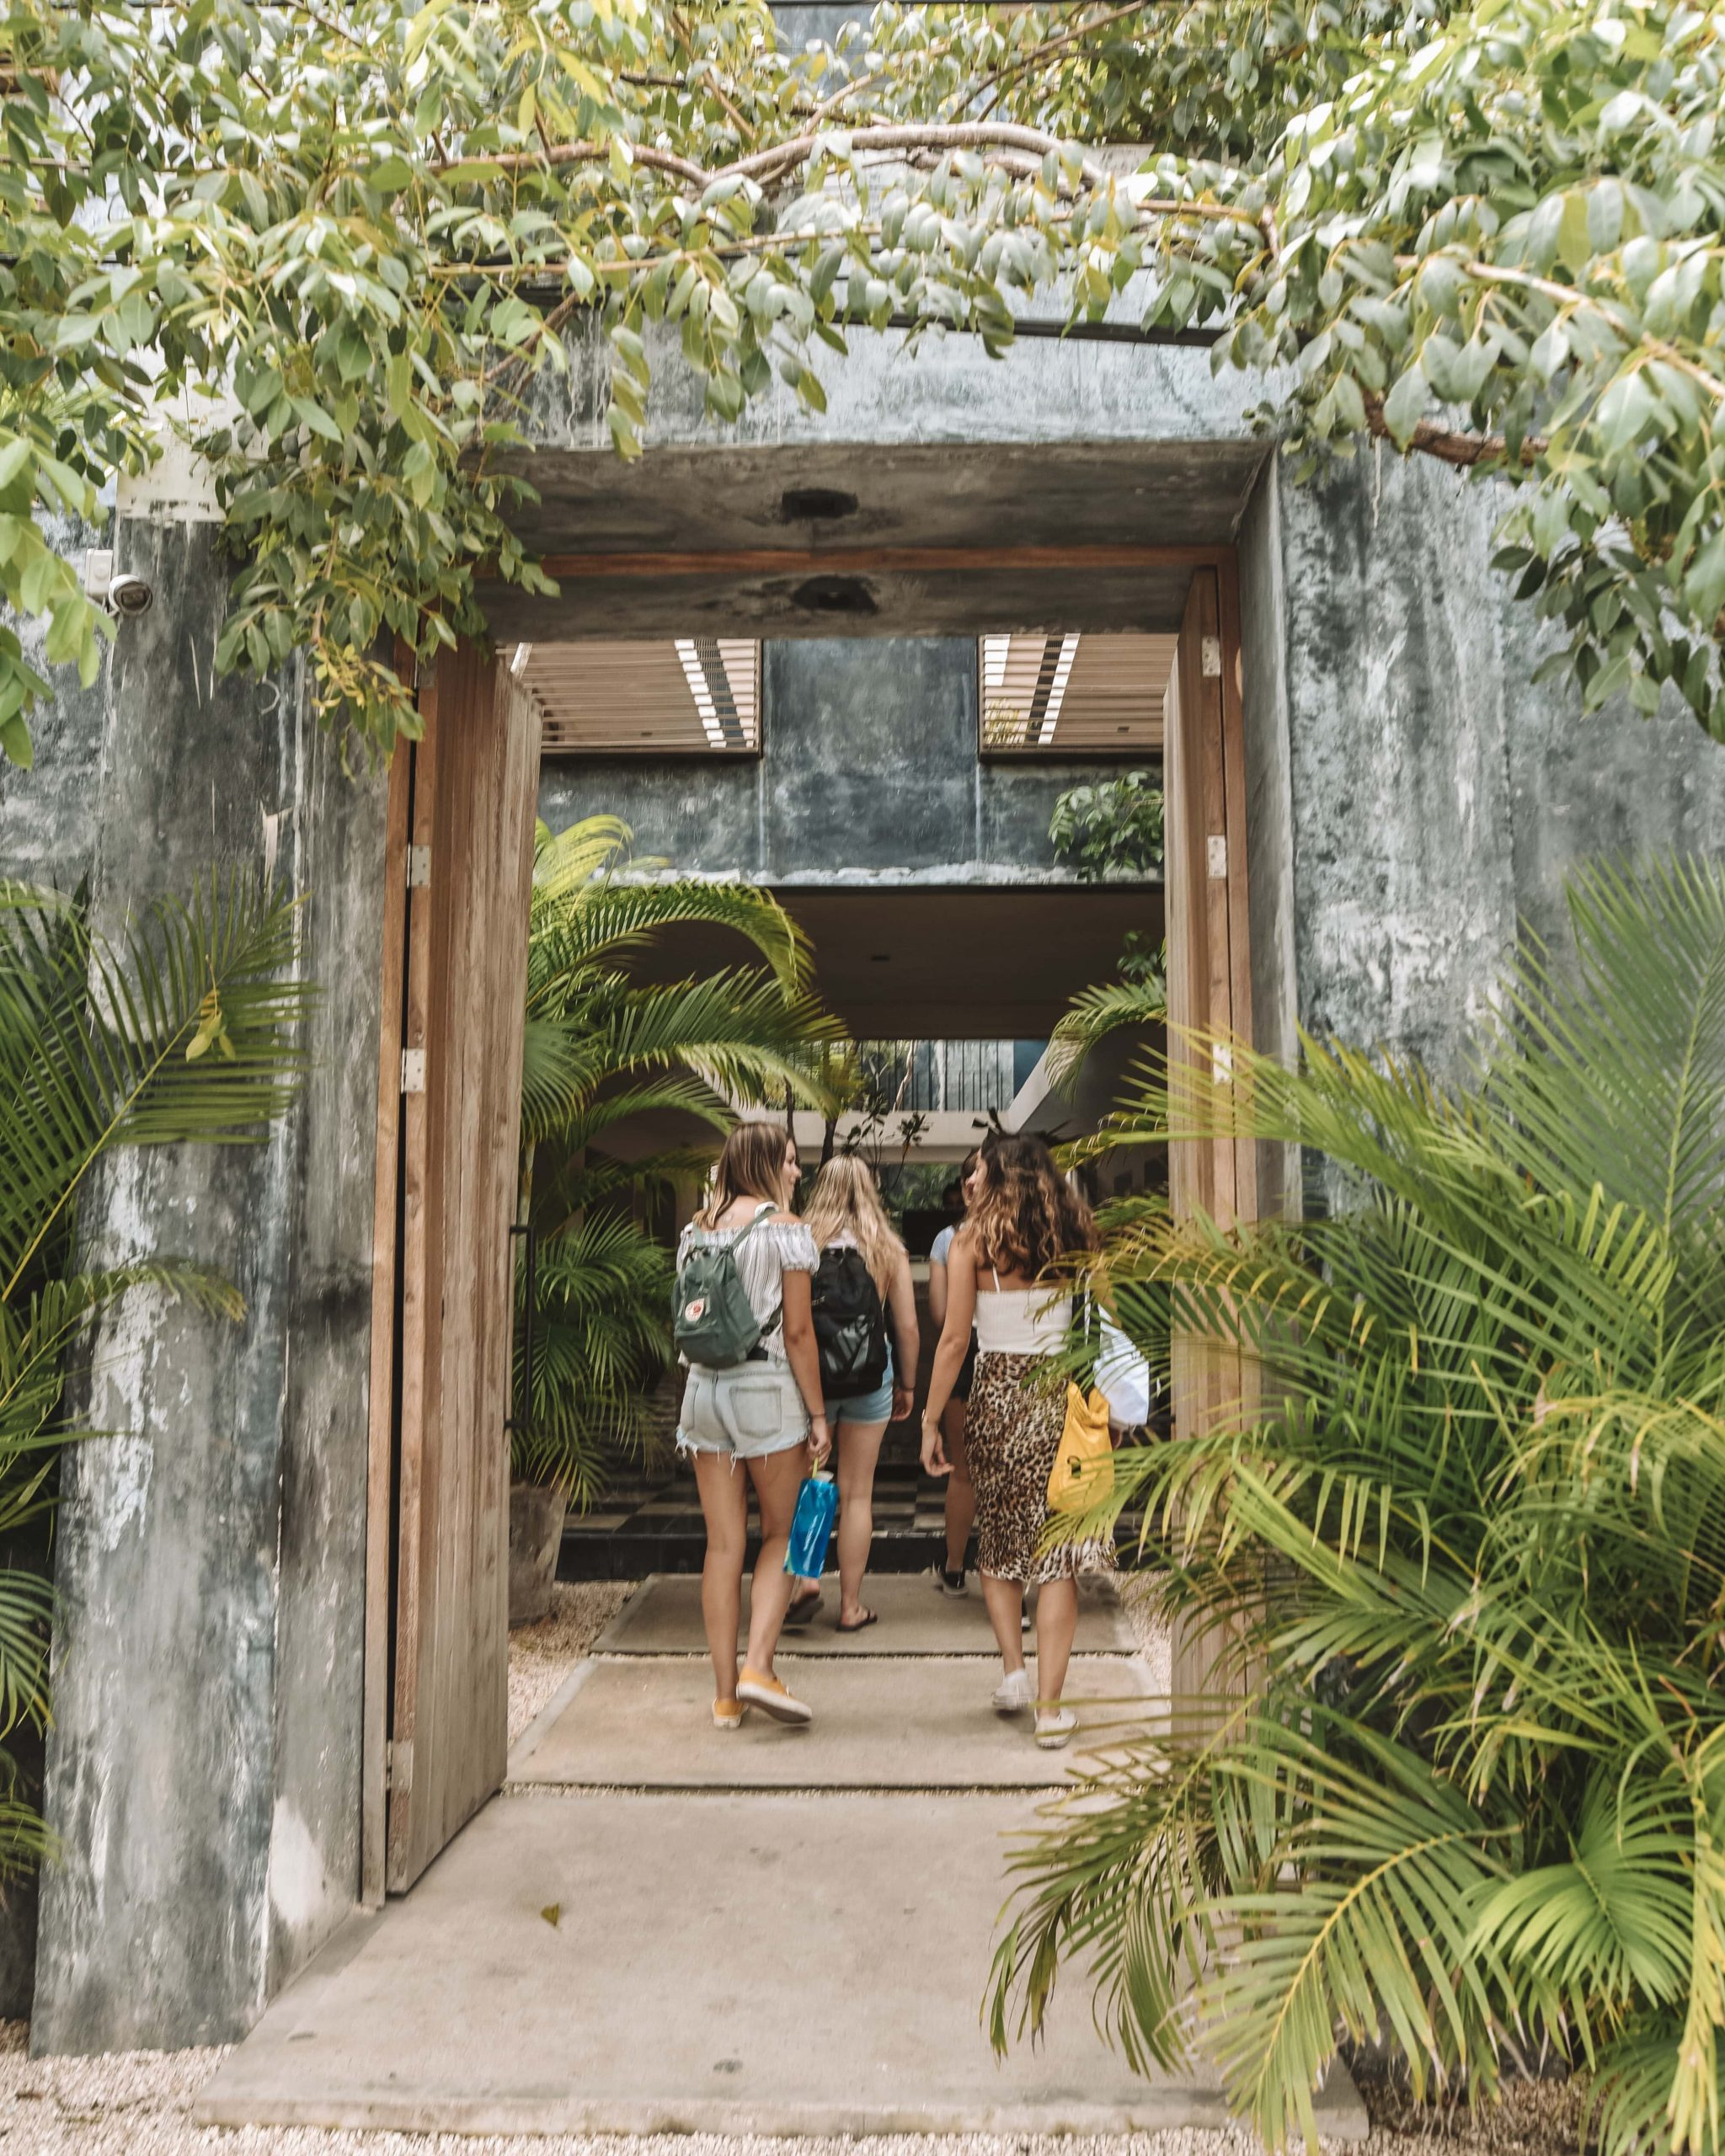 Group of girls in Tulum, Mexico